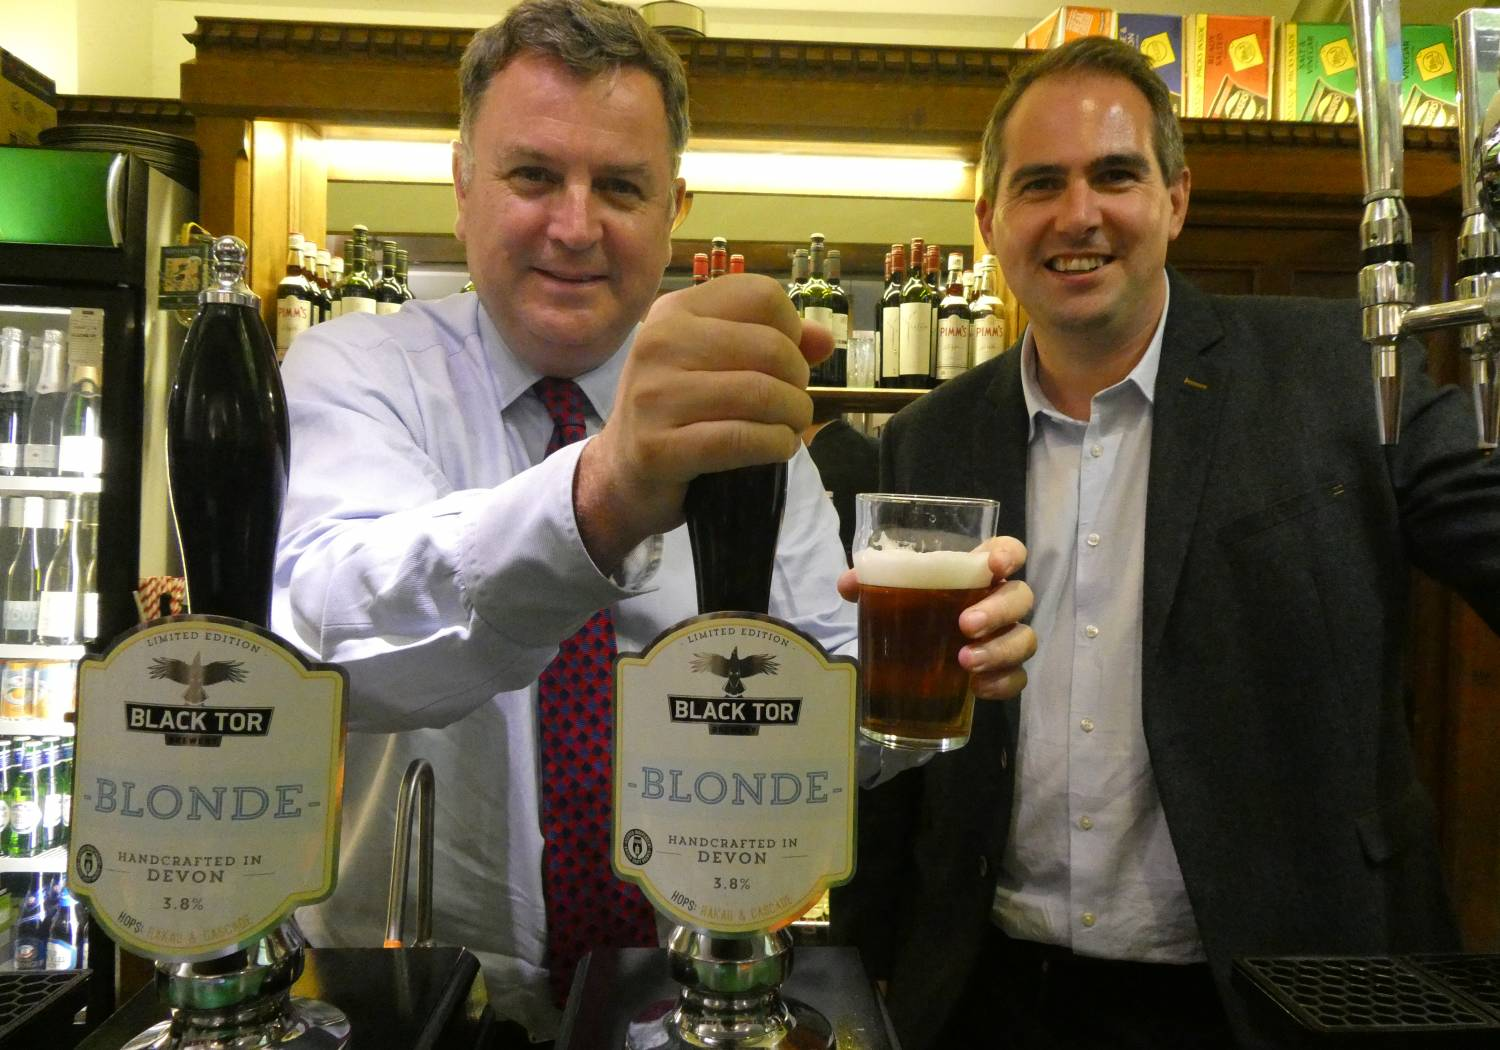 Mel Stride, Mid-Devon MP (left) & Jonathon Crump of Black Tor Brewery (right) pictured in the Strangers' Bar at the House of Commons.